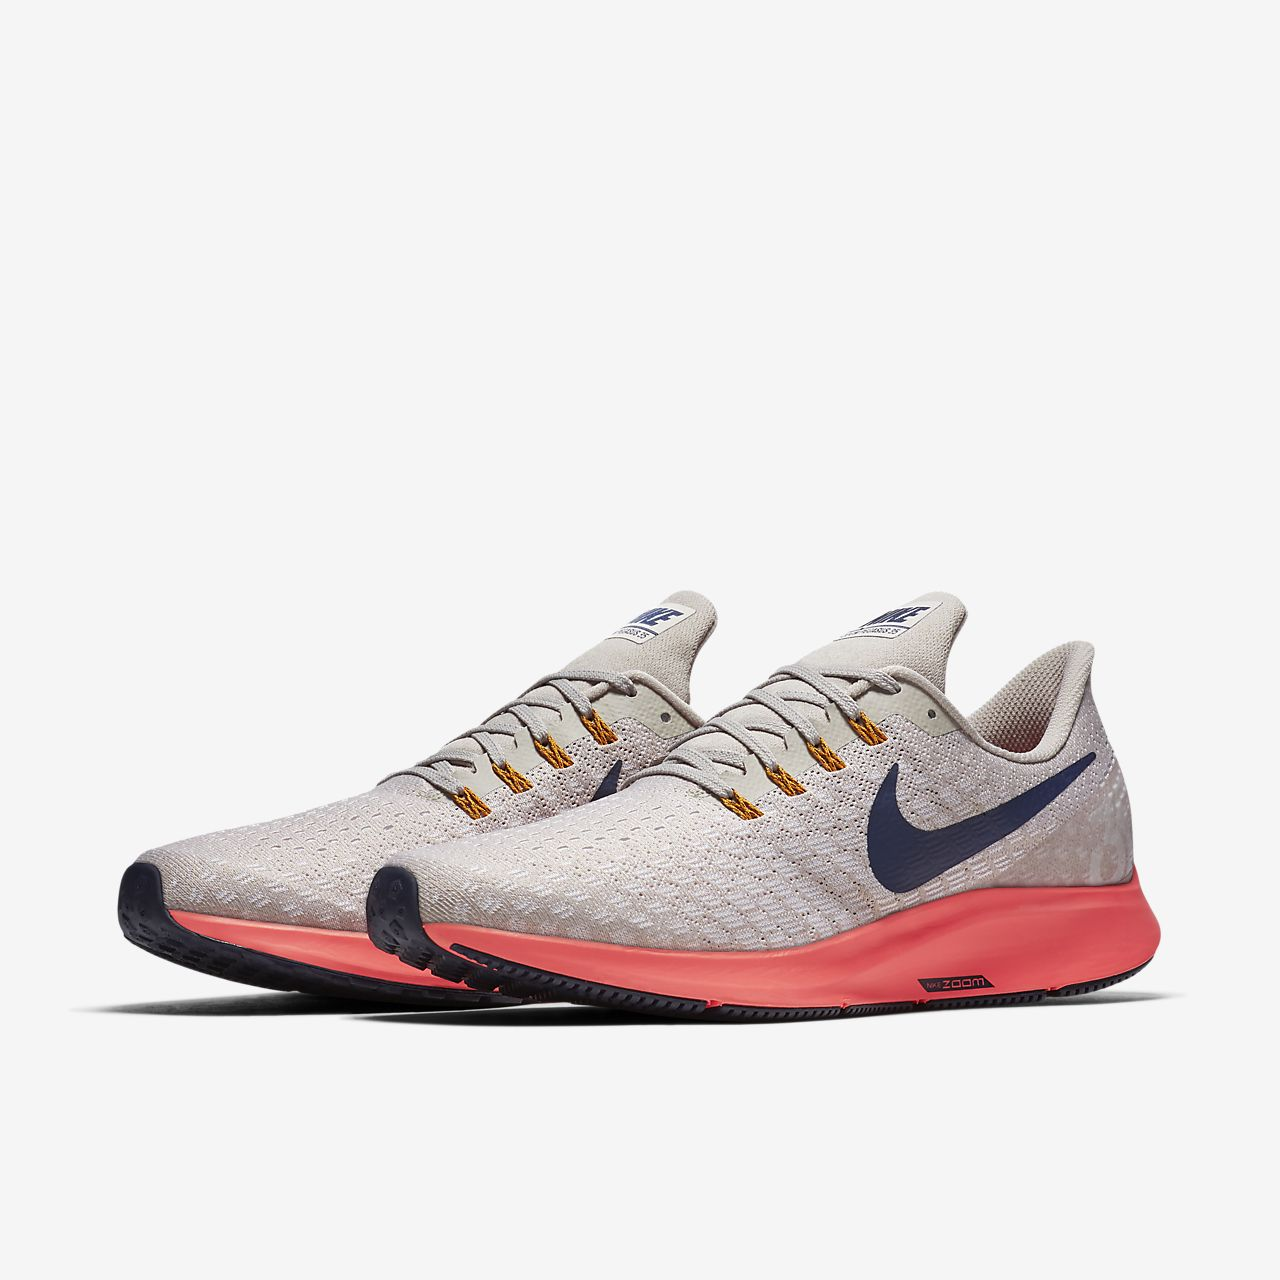 da27d62d7332 Nike Air Zoom Pegasus 35 Men s Running Shoe. Nike.com